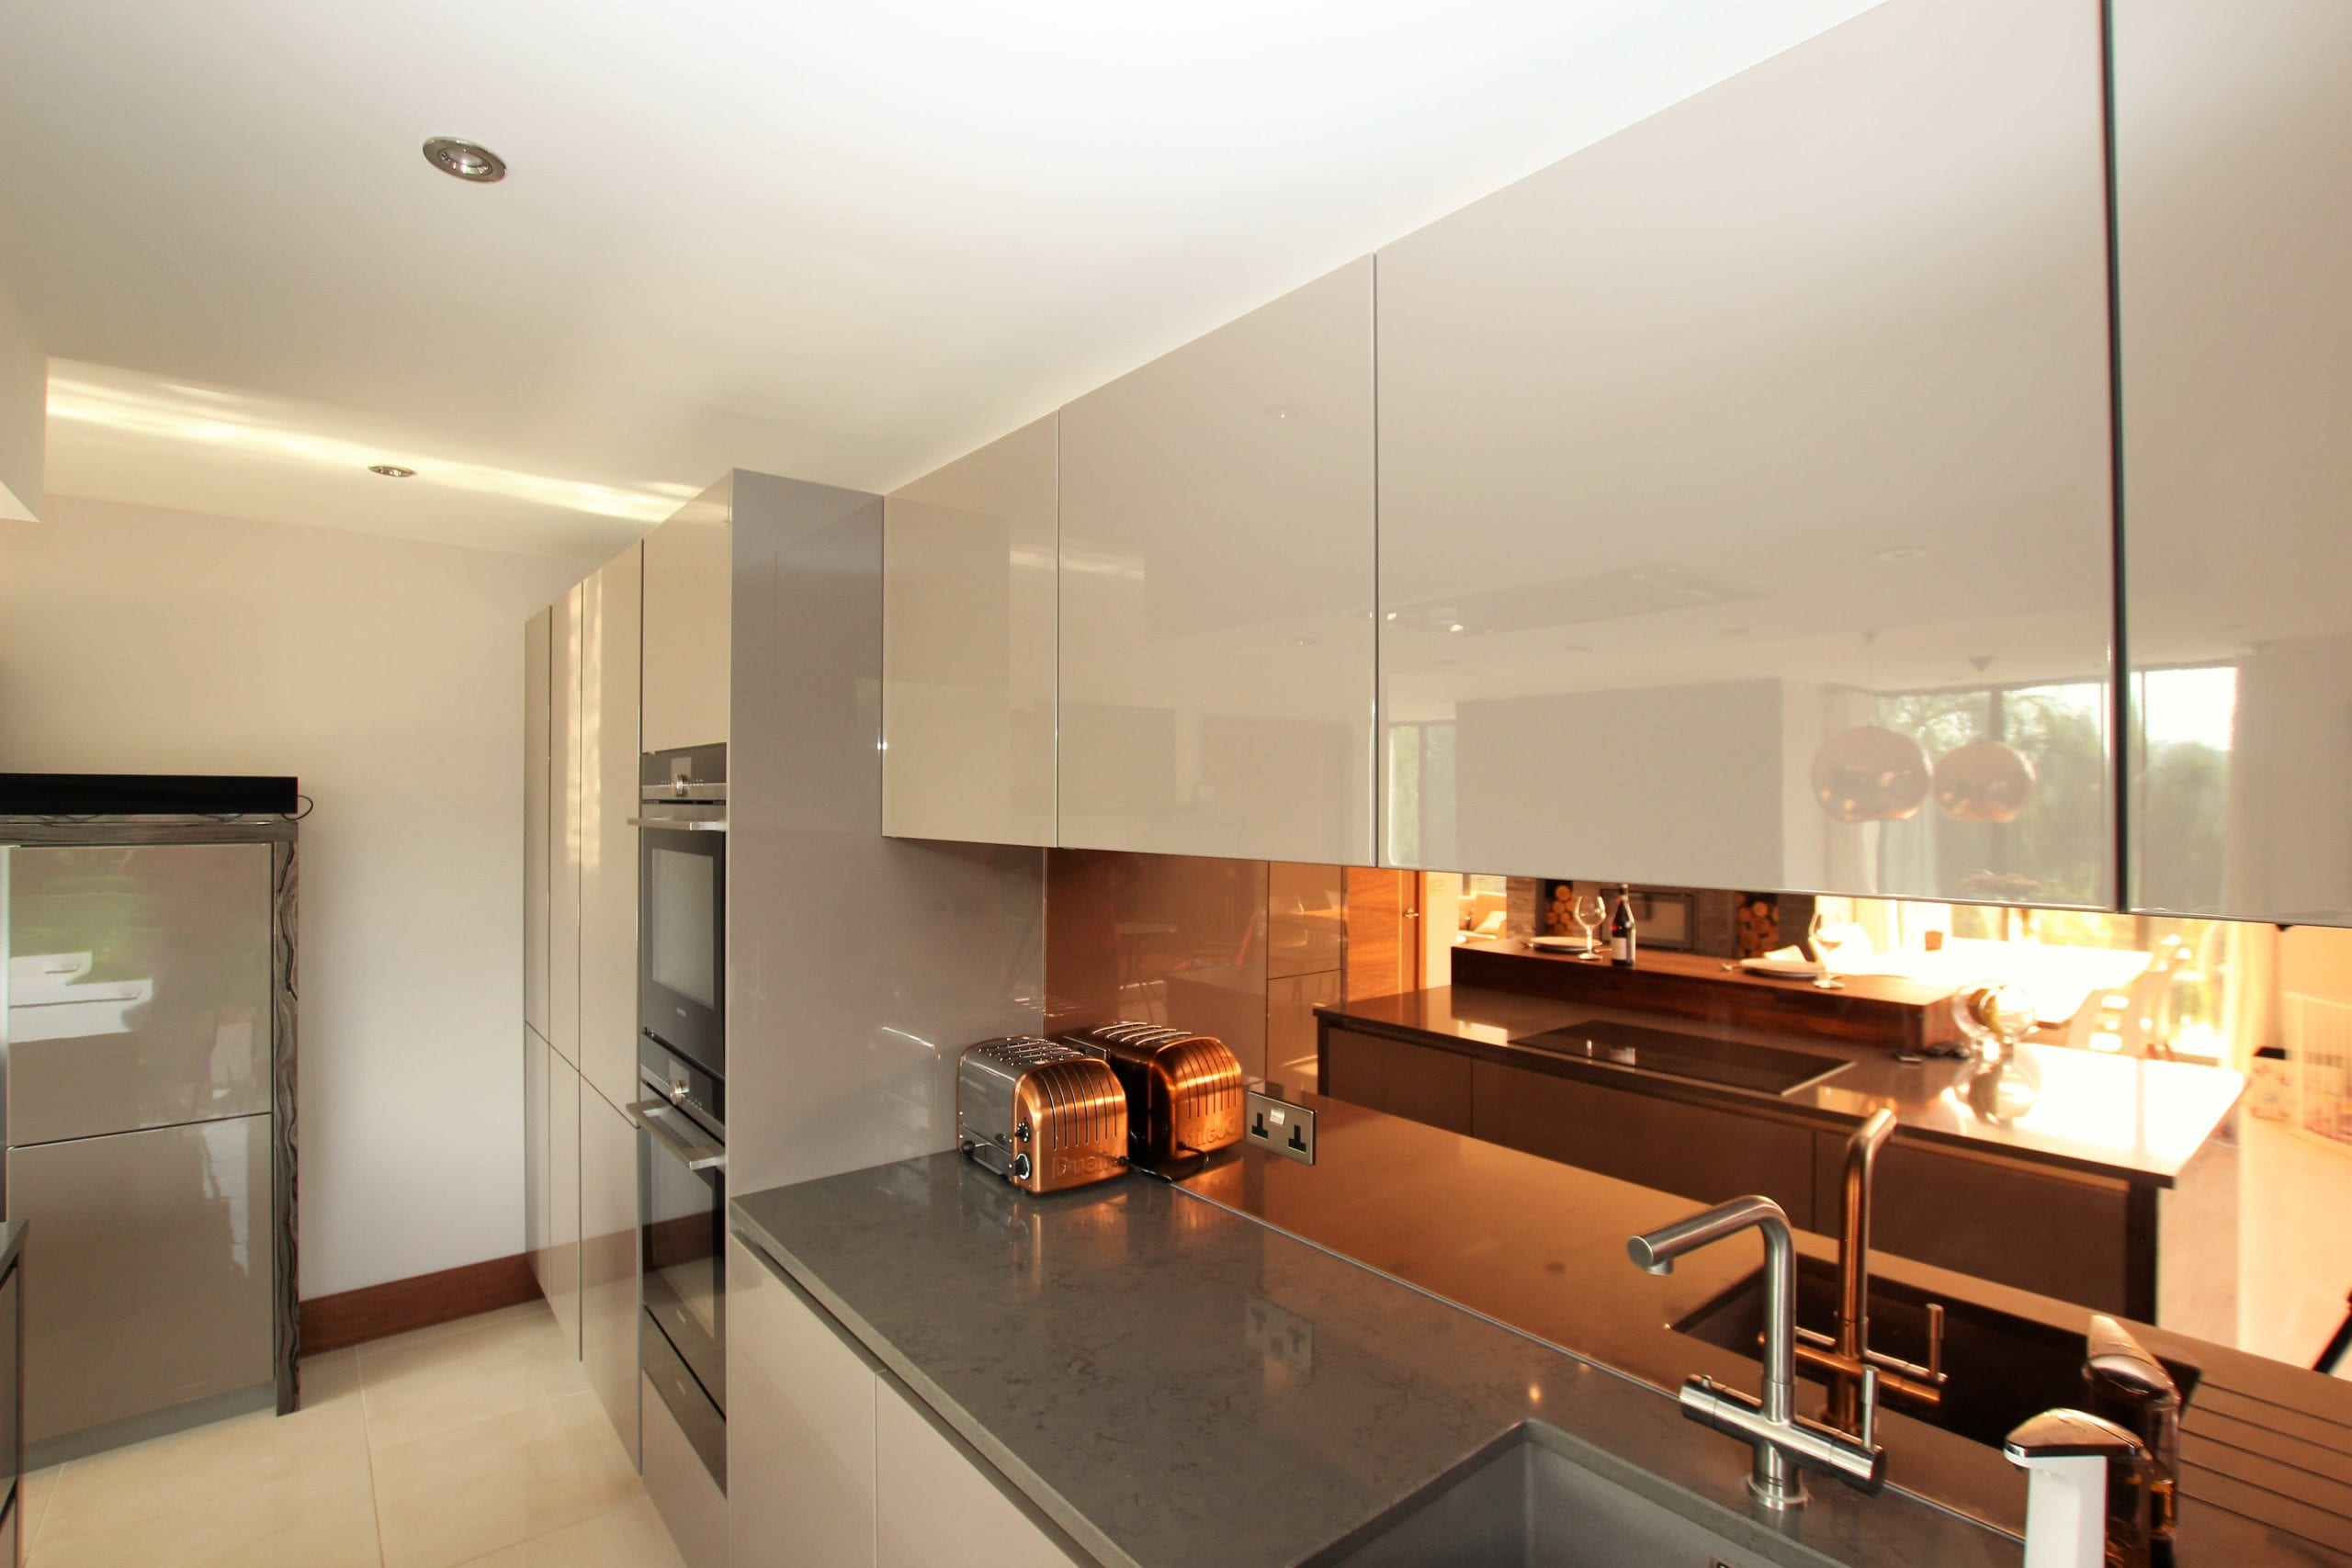 16. Bronze mirror splashback scaled - Kavanagh Designs, Worthing